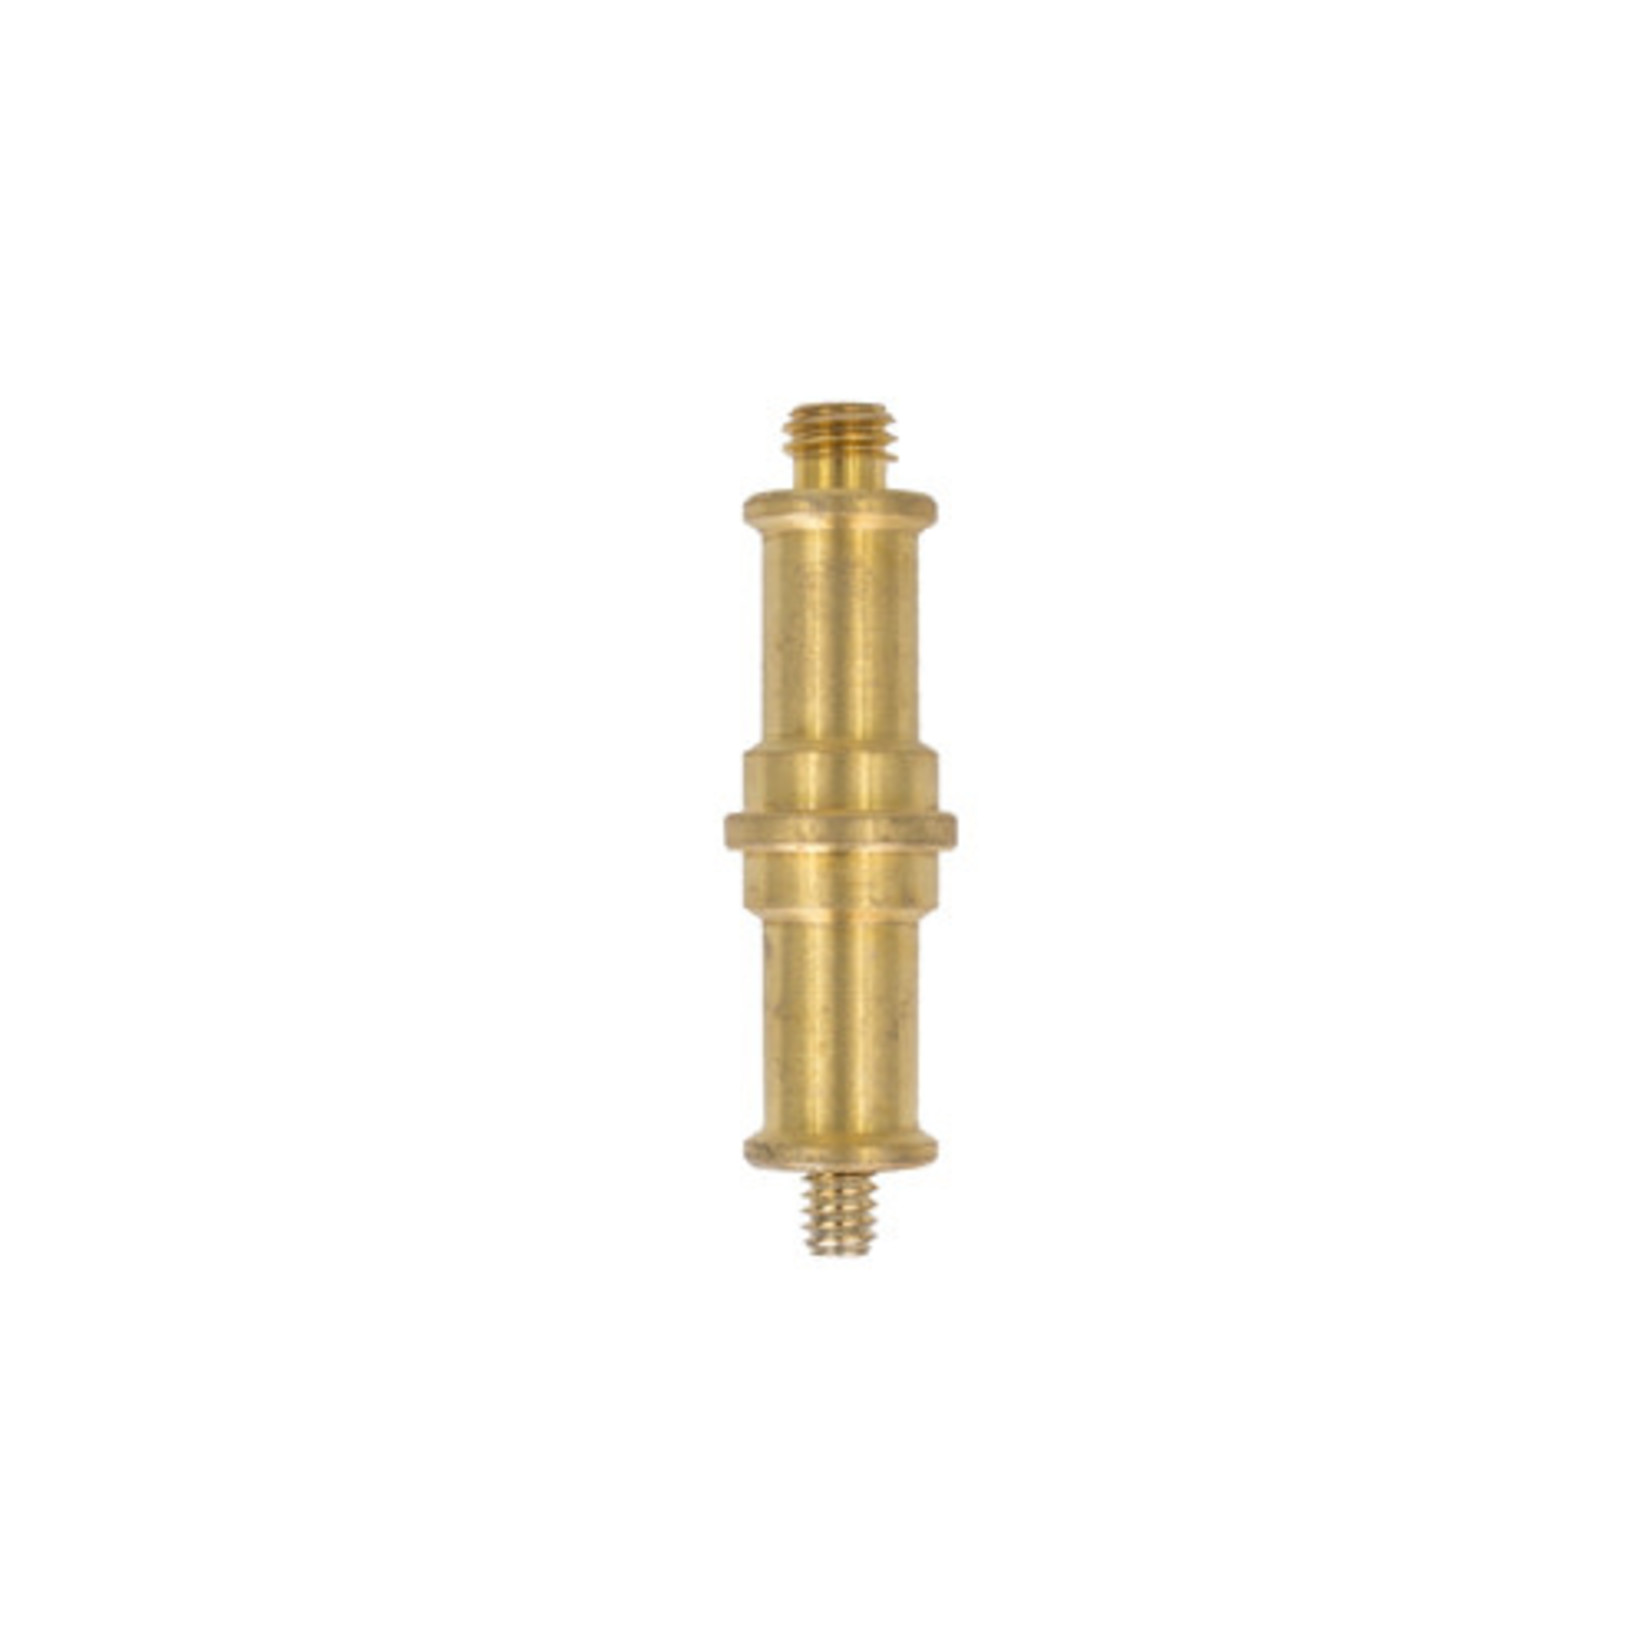 ProMaster Double Spigot 1/4-20 male to 3/8 male - Brass